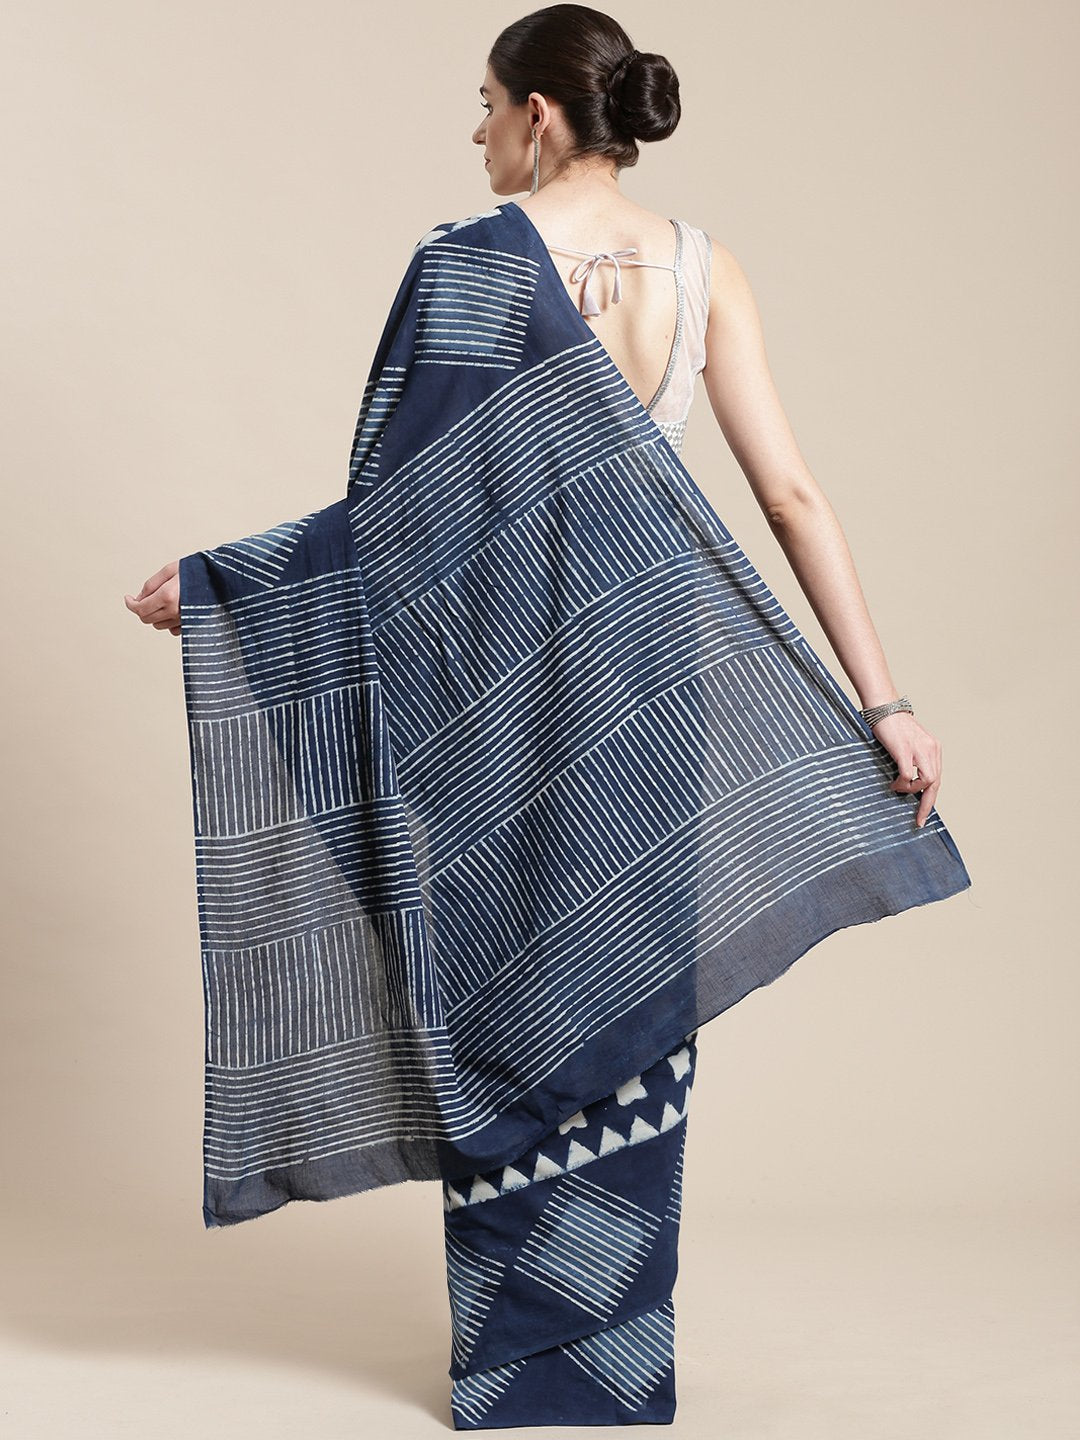 Linen Handwoven Saree and Blouse-Saree-Kalakari India-ALBGSA0031-Hand Woven, Linen, Sarees, Sustainable Fabrics, Traditional Weave-[Linen,Ethnic,wear,Fashionista,Handloom,Handicraft,Indigo,blockprint,block,print,Cotton,Chanderi,Blue, latest,classy,party,bollywood,trendy,summer,style,traditional,formal,elegant,unique,style,hand,block,print, dabu,booti,gift,present,glamorous,affordable,collectible,Sari,Saree,printed, holi, Diwali, birthday, anniversary, sustainable, organic, scarf, online, low pri